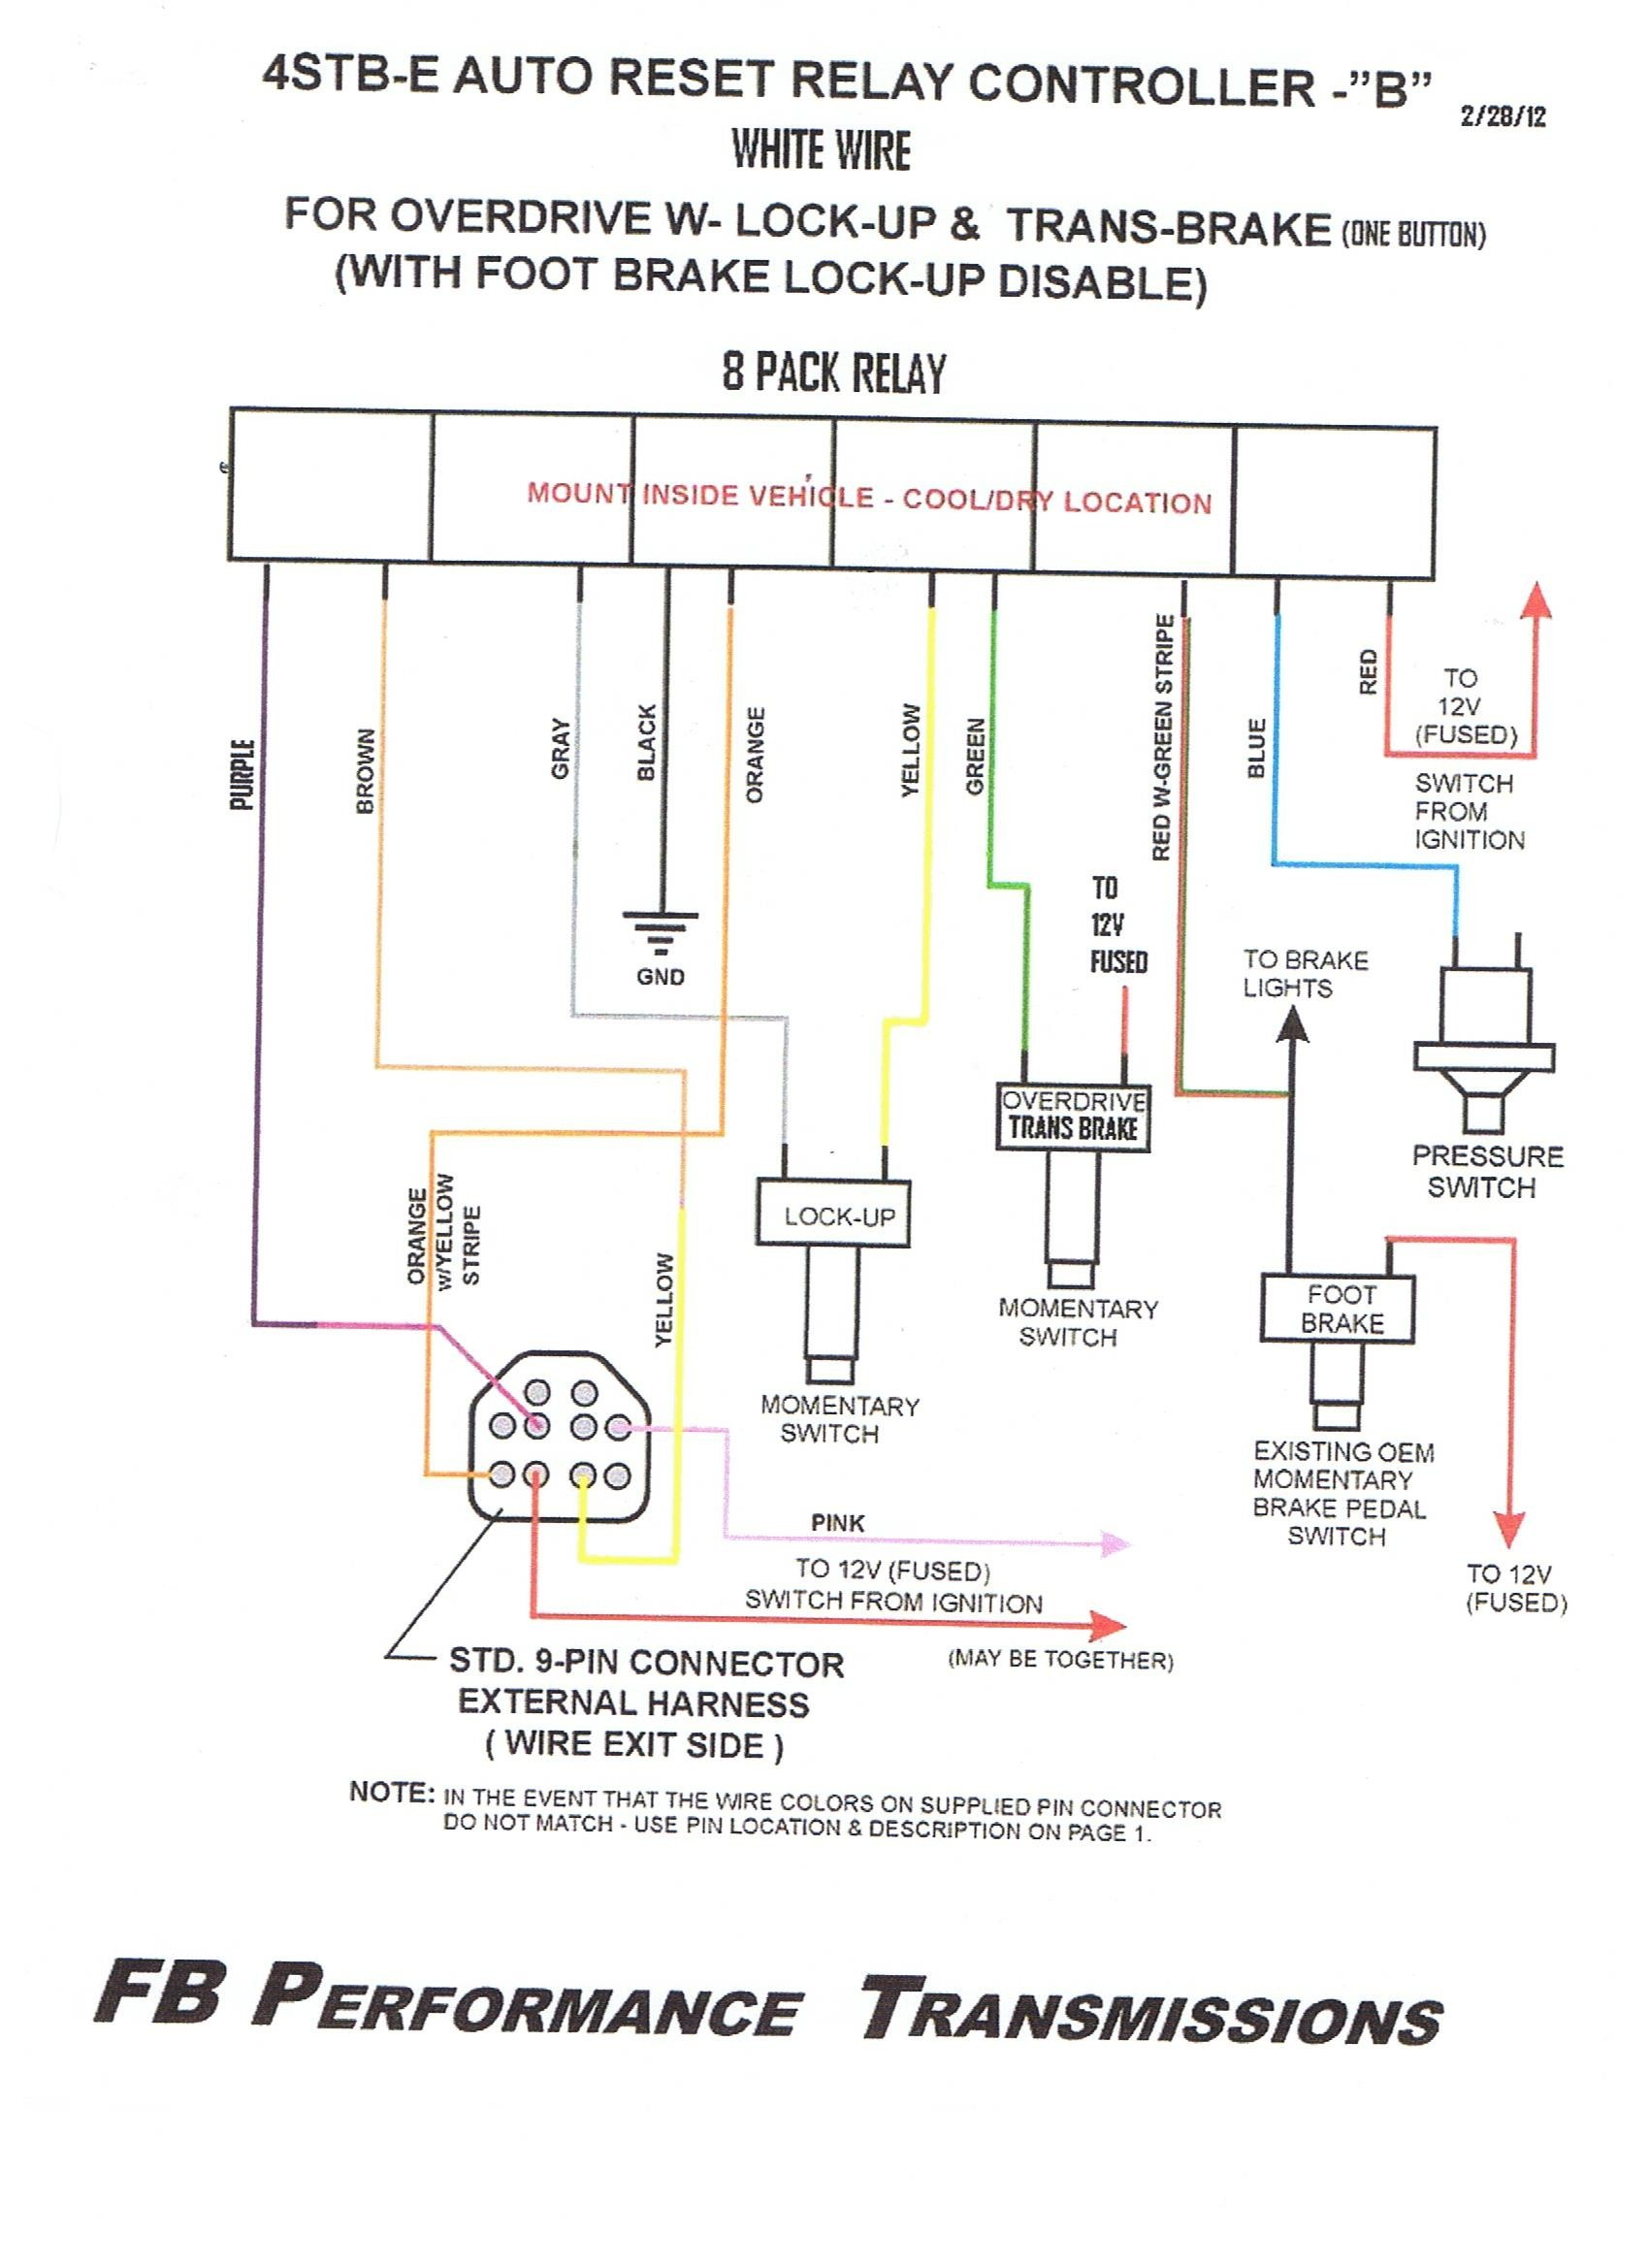 Wiring Diagram for Emergency Light Switch Best Emergency Stop button Wiring Diagram Best 005 Copy